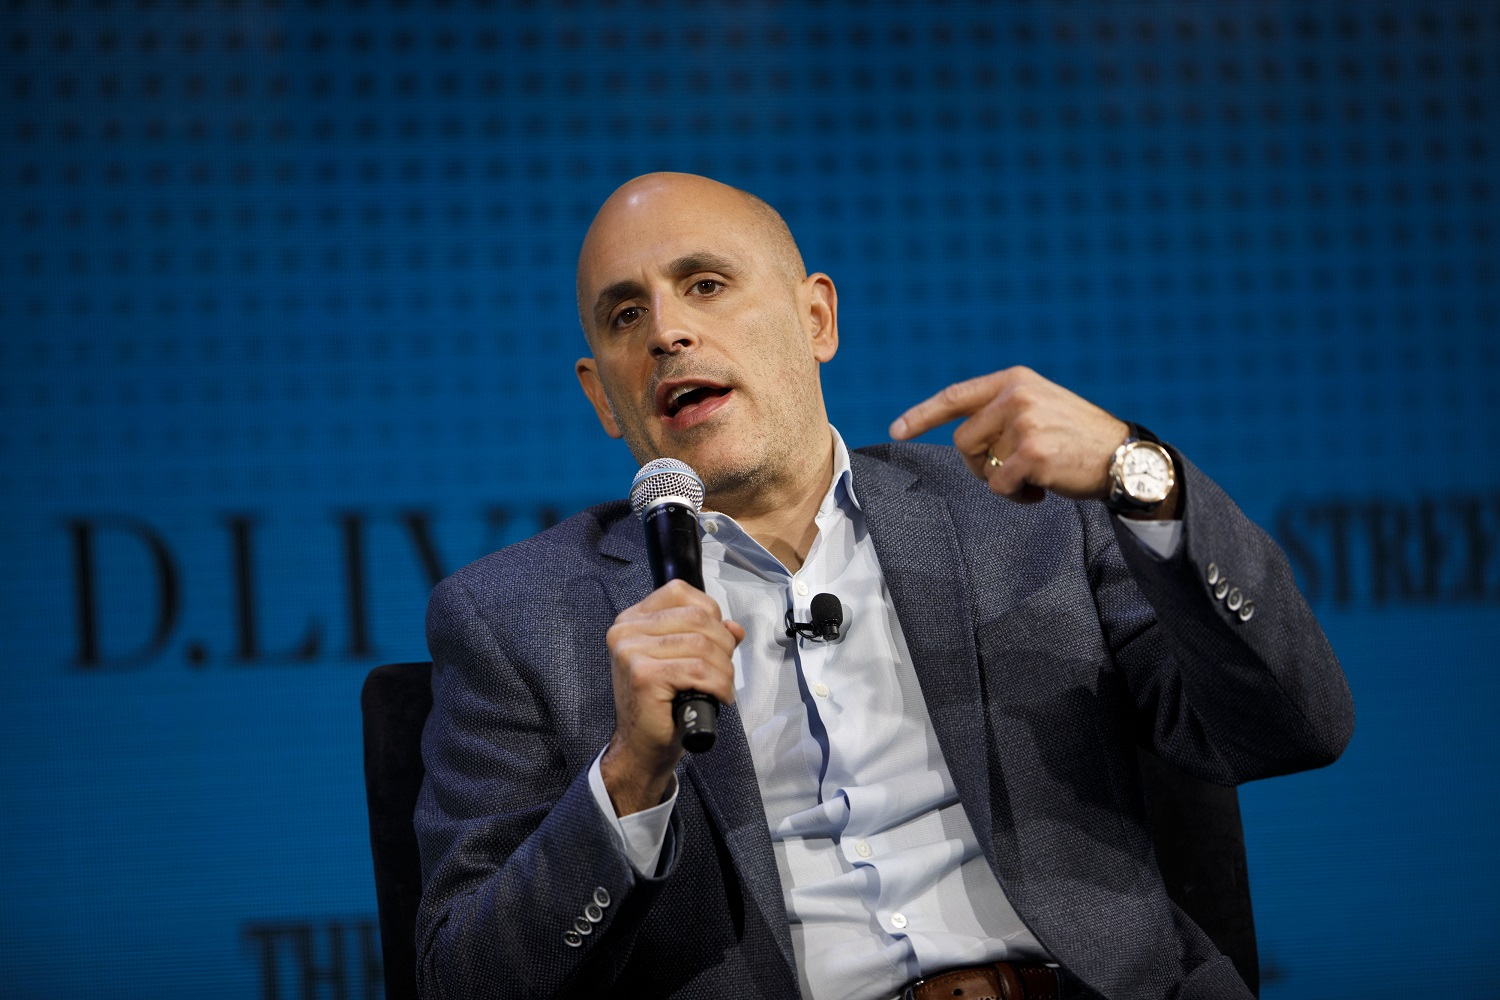 Prospective Minnesota Timberwolves co-owner Marc Lore started a pair of companies that he later sold to major corporations. | Patrick T. Fallon/Bloomberg via Getty Images